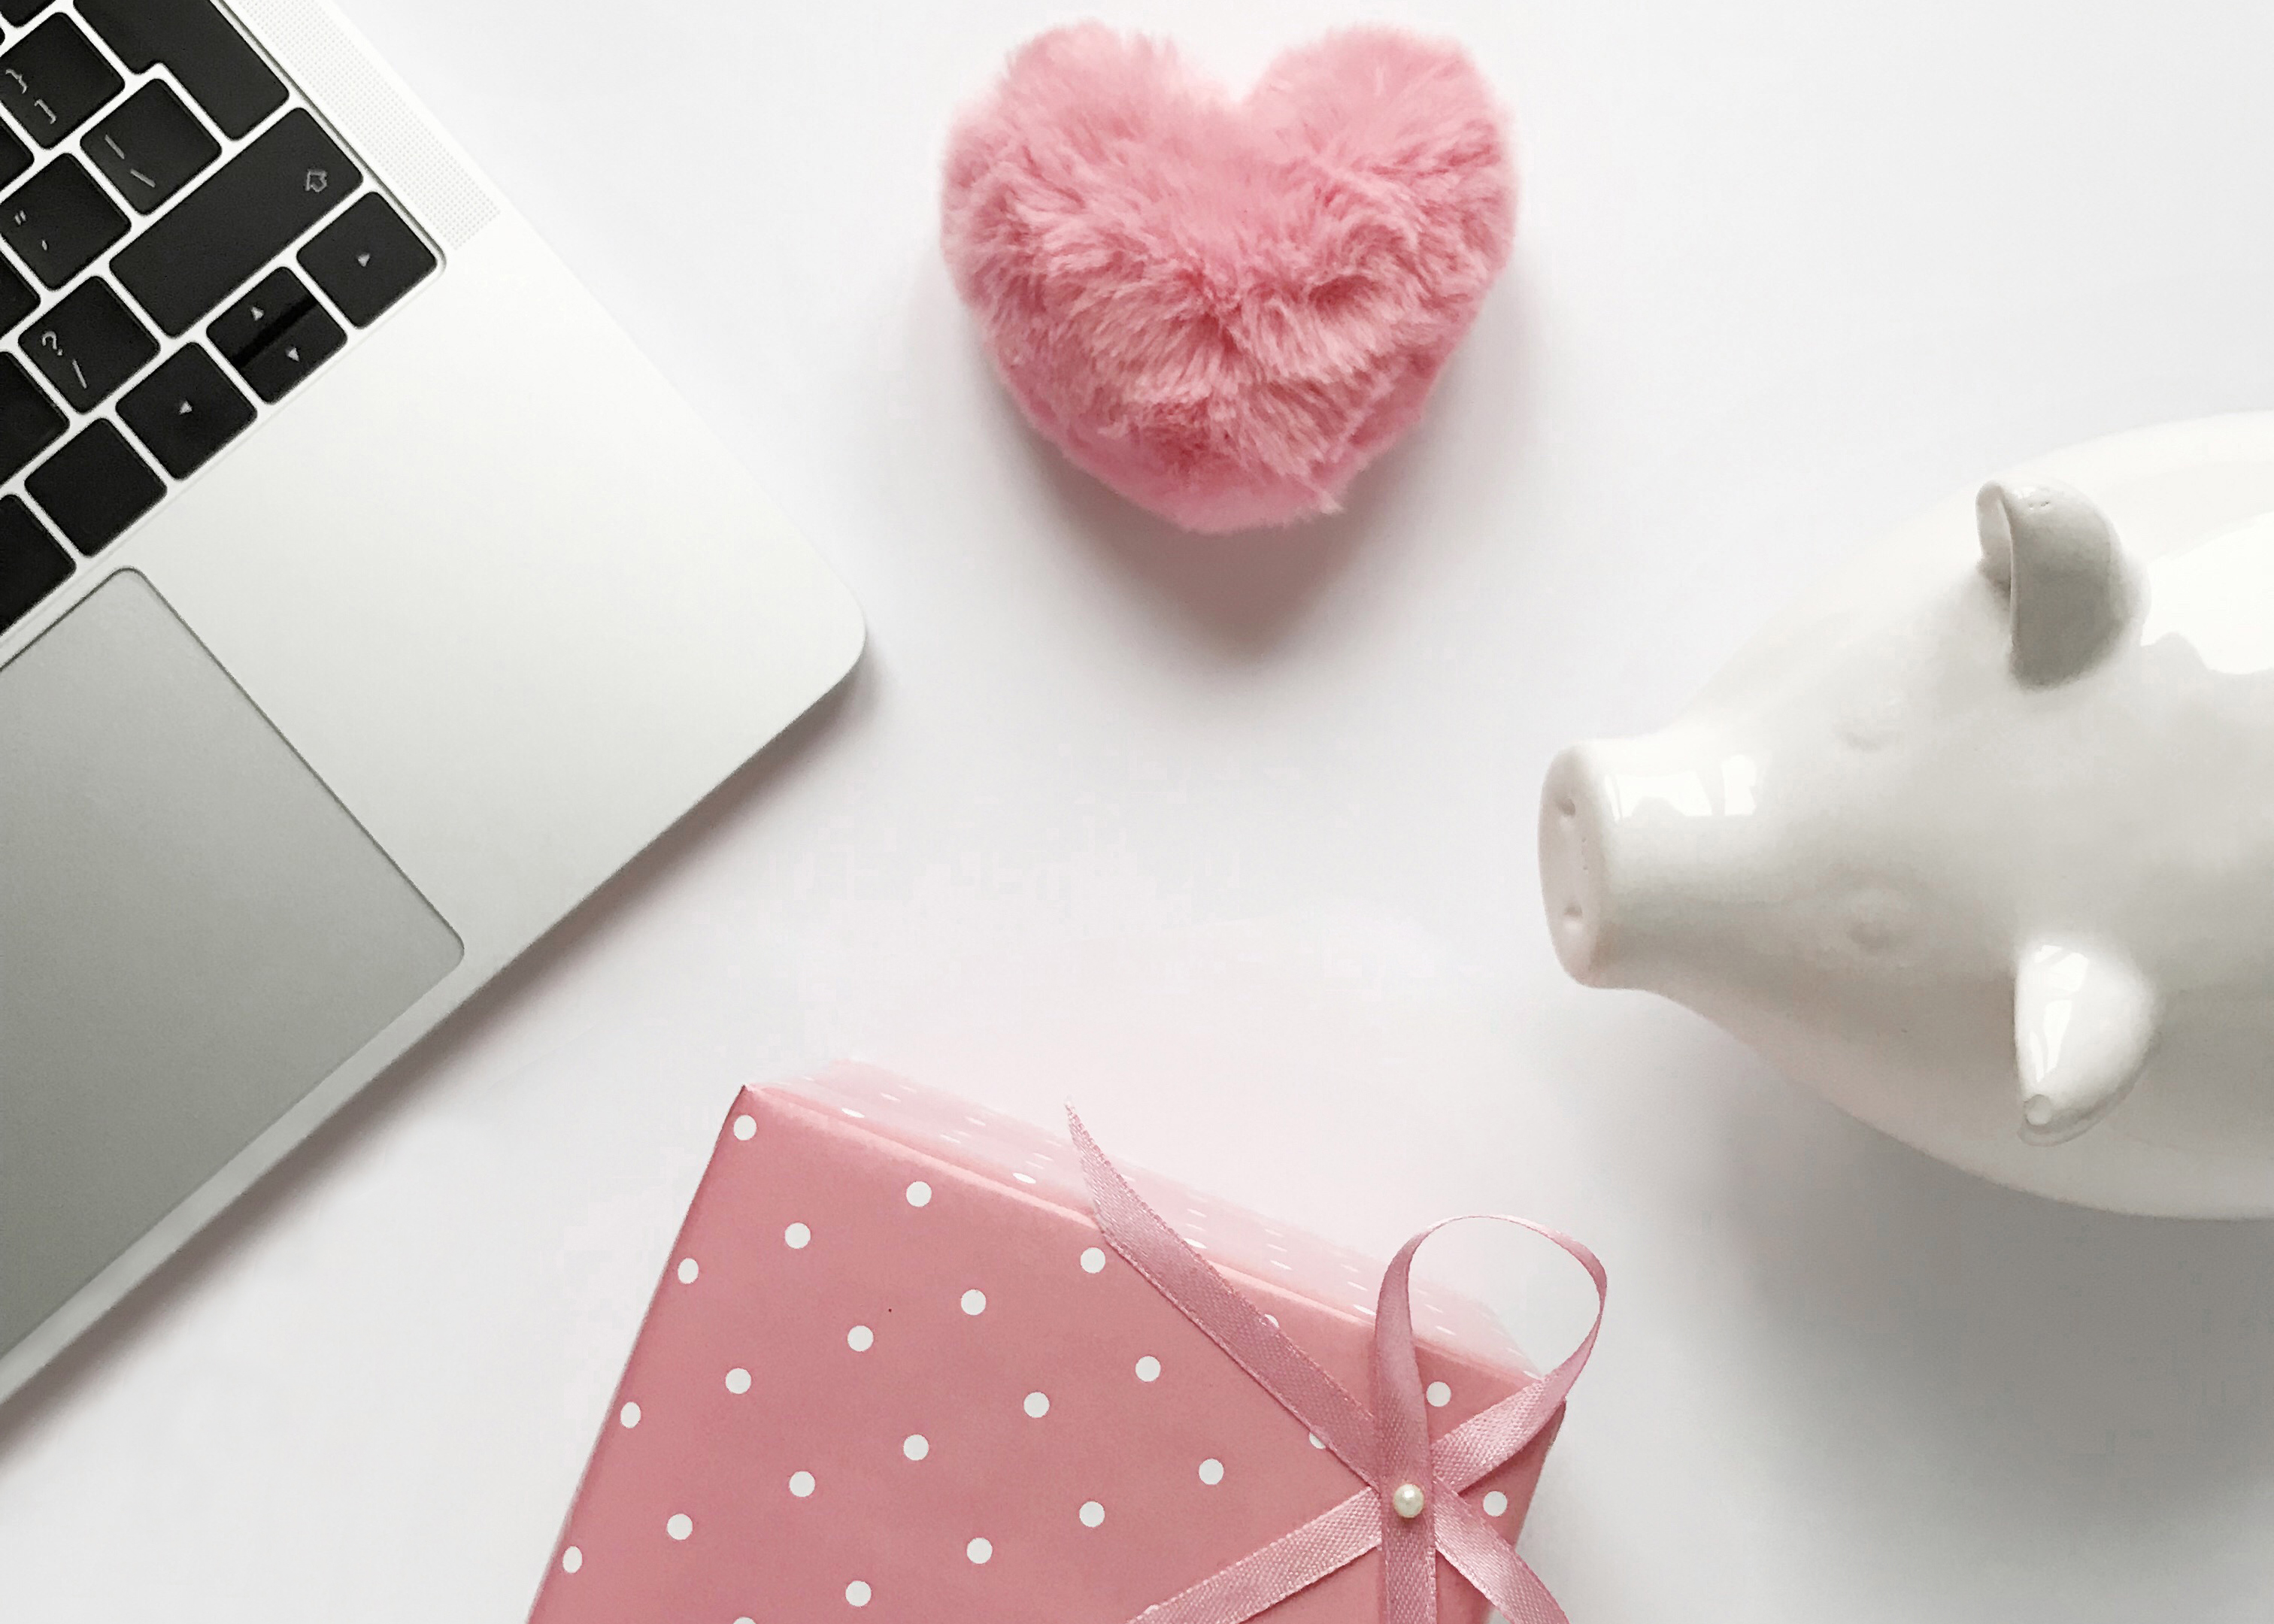 4 Ways to Make More Money on Valentine's Day